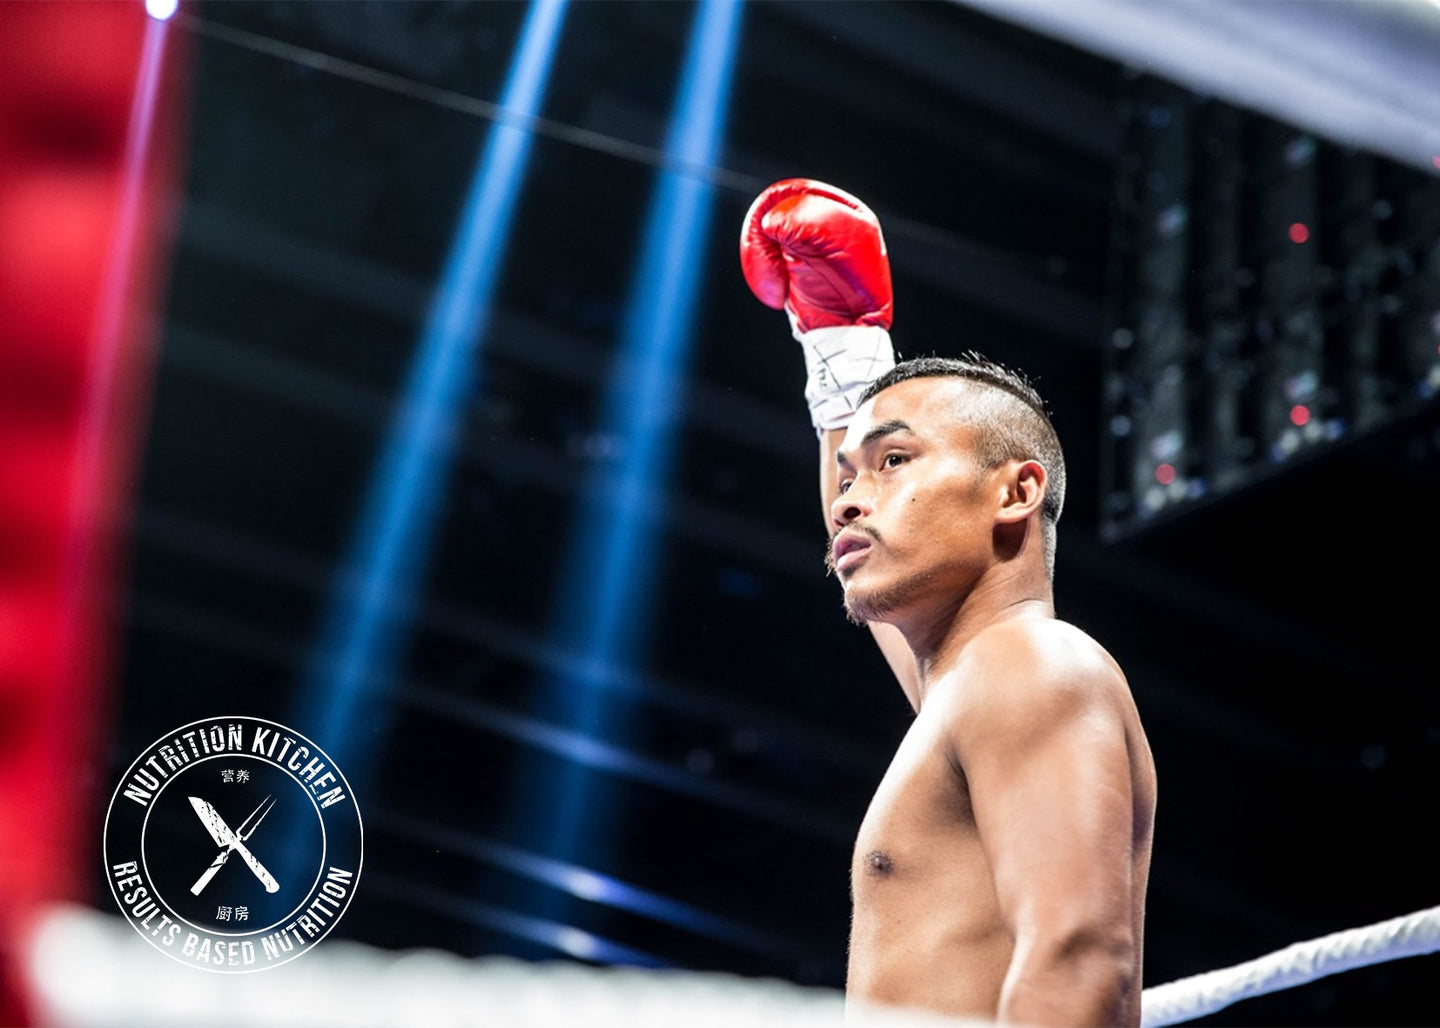 Boxing Champion Sures Gurung talks to Nutrition Kitchen